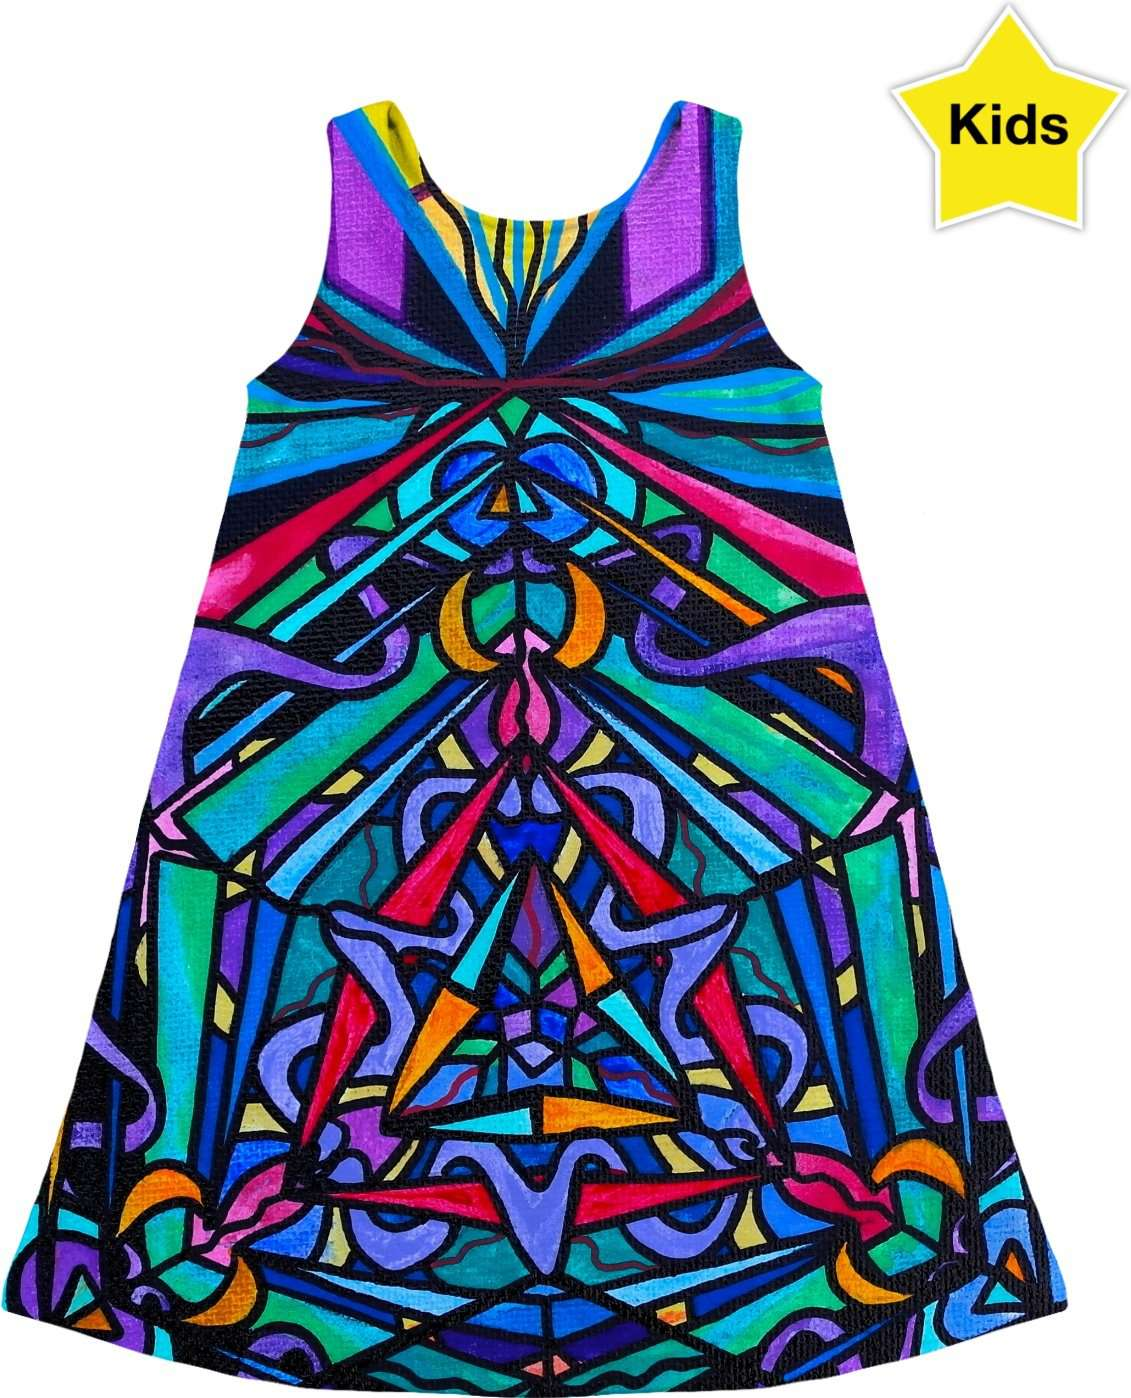 Coherence - Kids Dress